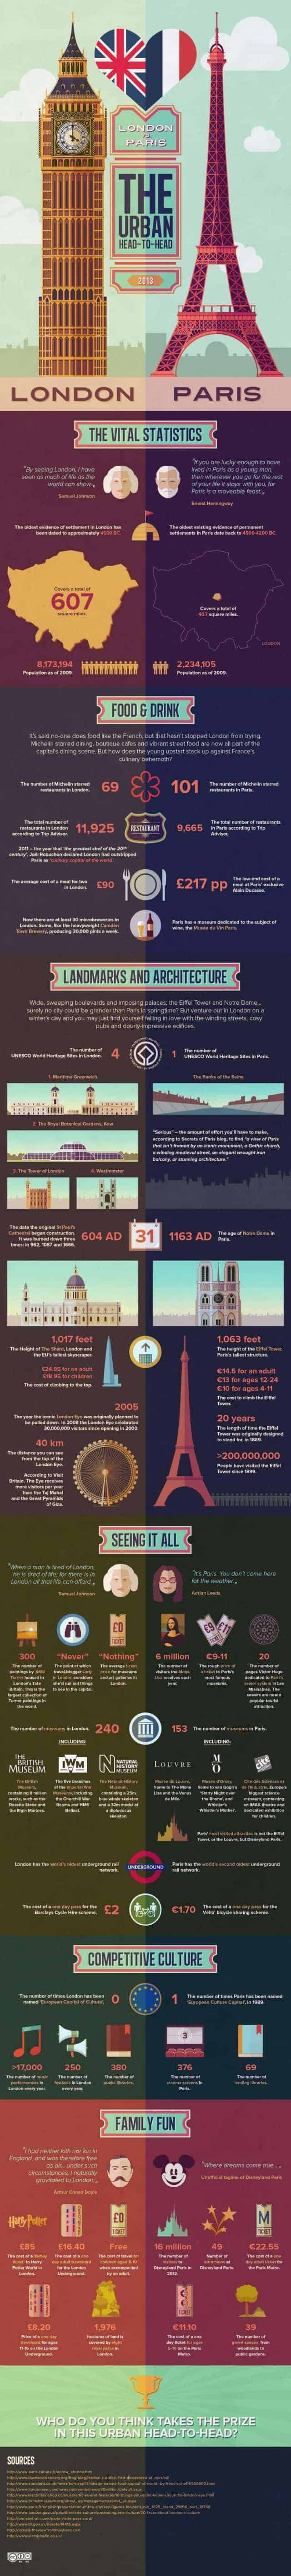 London vs. Paris [infographic]